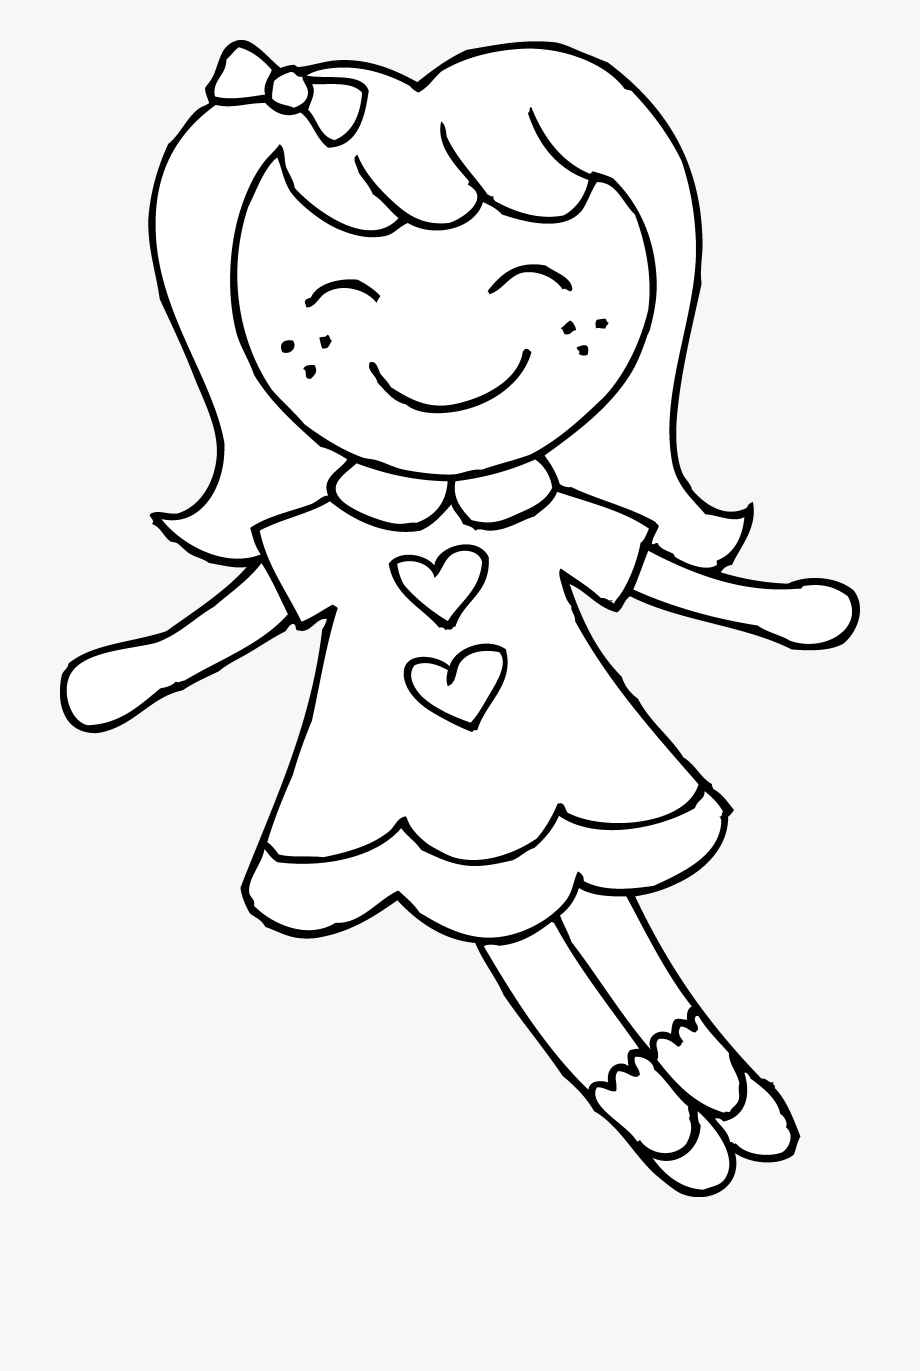 Cute Dolly Coloring Page.